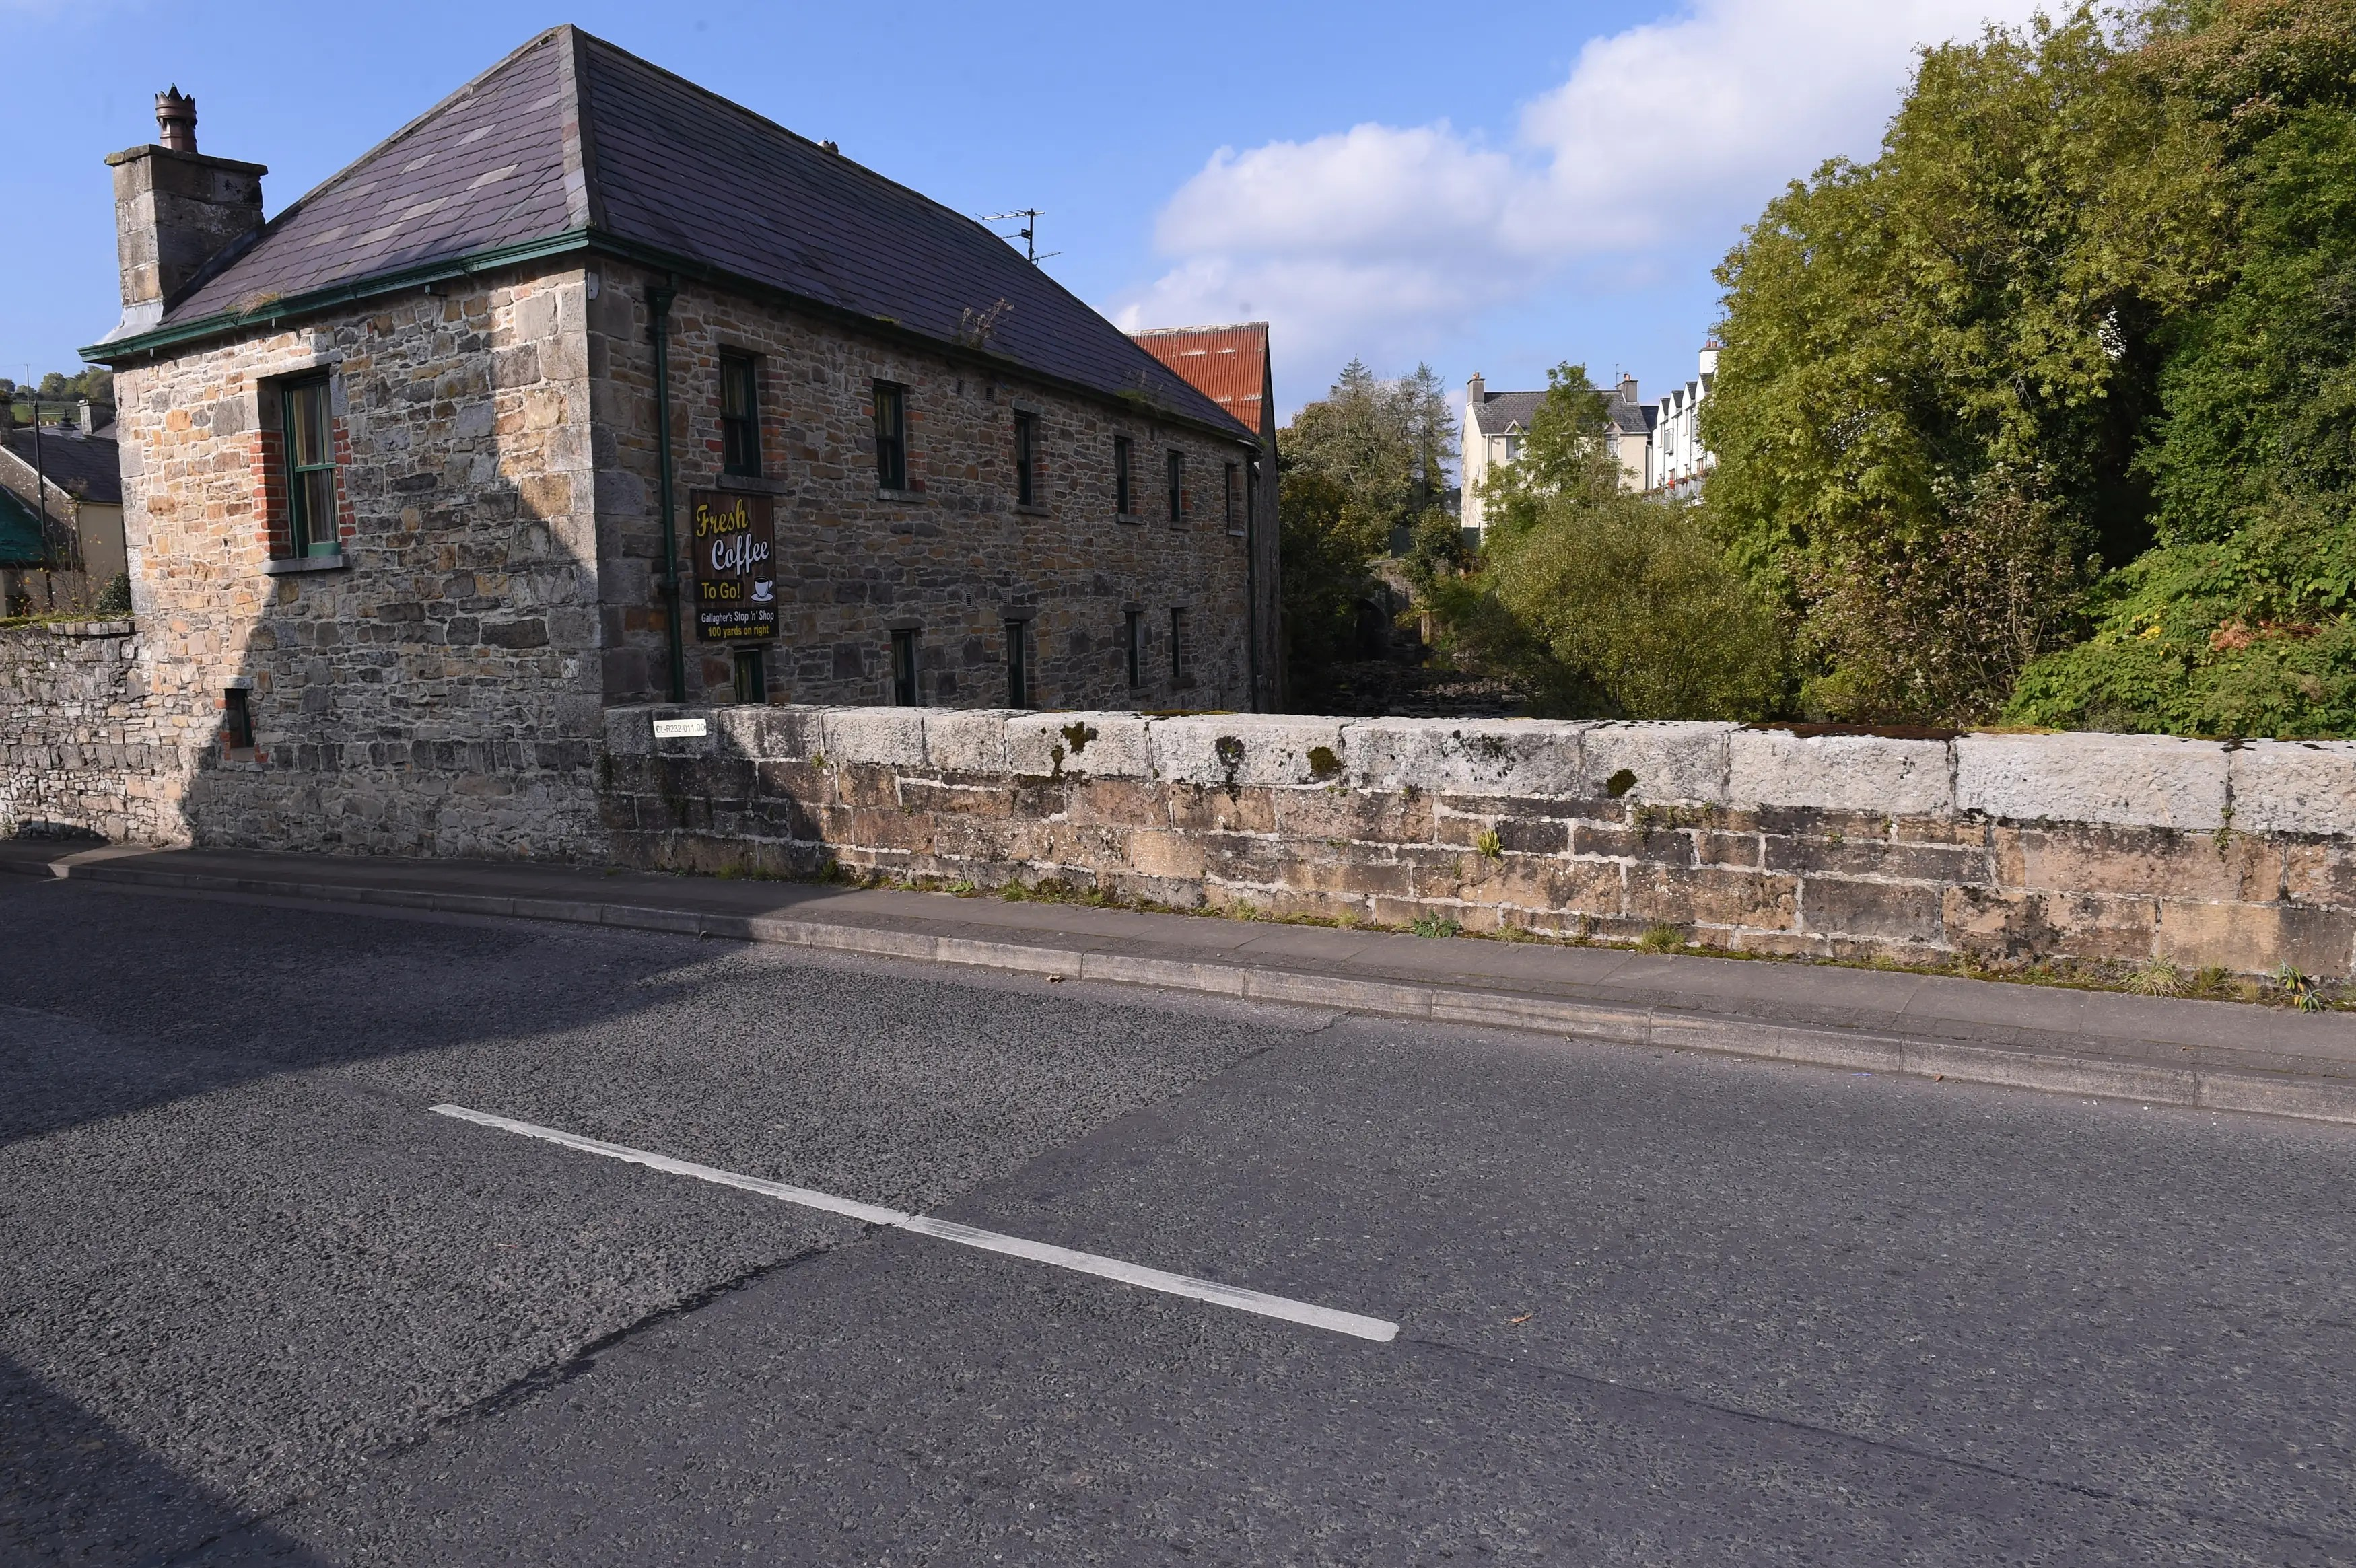 Here, the subtle change in the road pavement indicates the border between the Republic of Ireland, which is to the left, and Northern Ireland, on the right, in the border town of Pettigo, Northern Ireland.